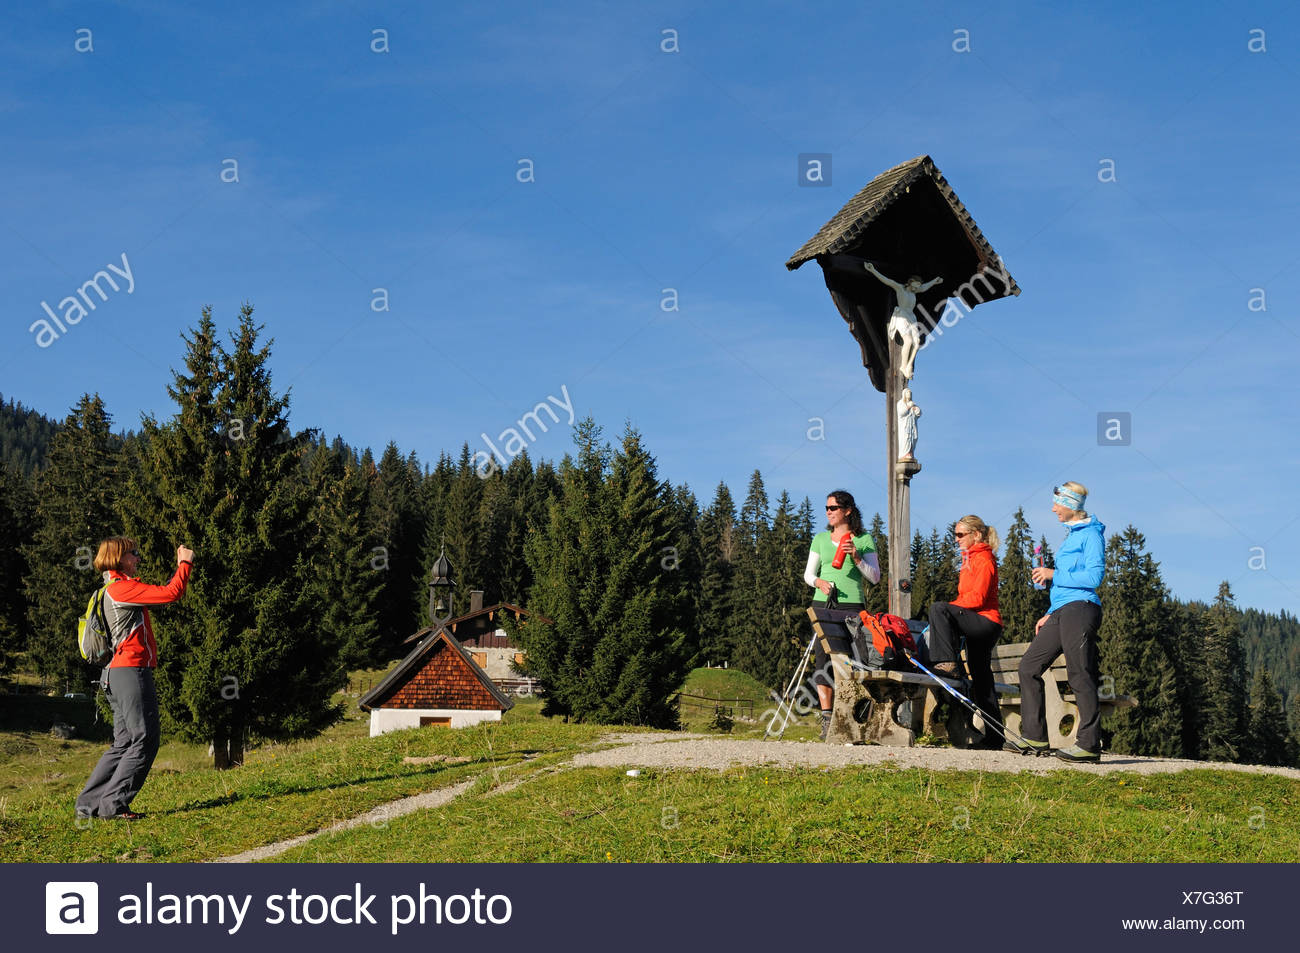 Female hikers having someone take a picture of them in front a cross on Winklmoosalm alp, Reit im Winkl, Chiemgau, Bavaria - Stock Image